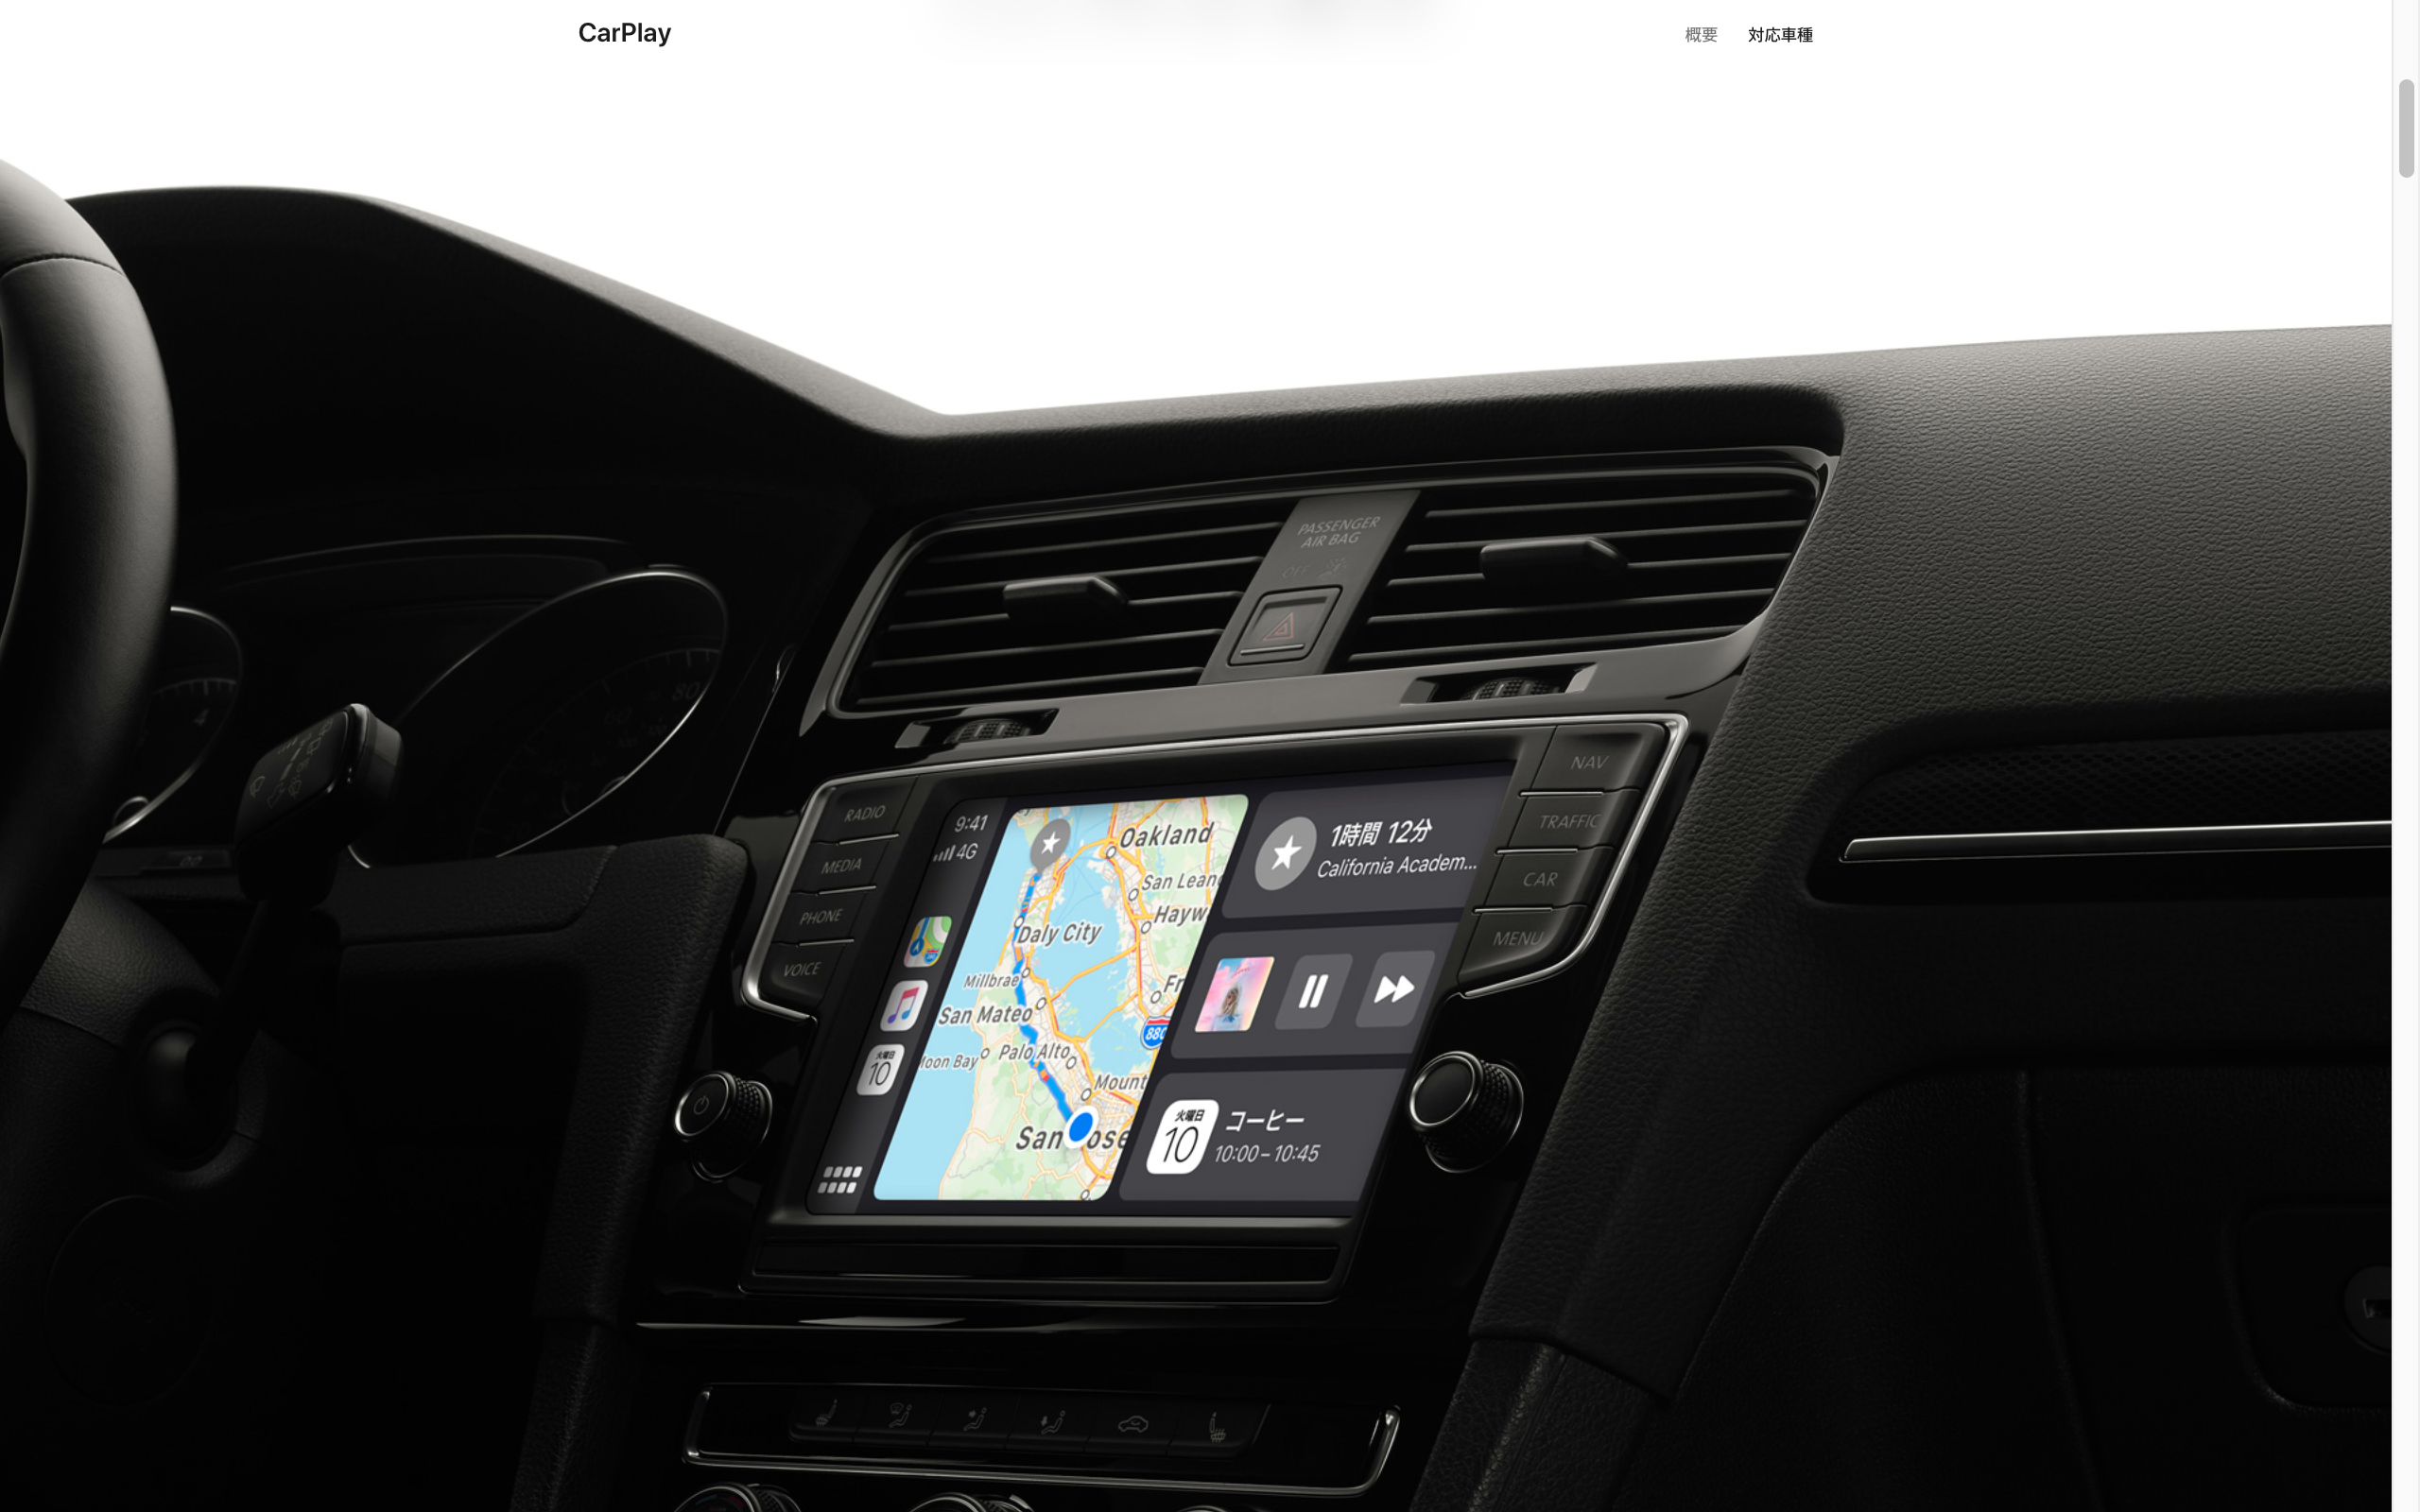 「CarPlay」1